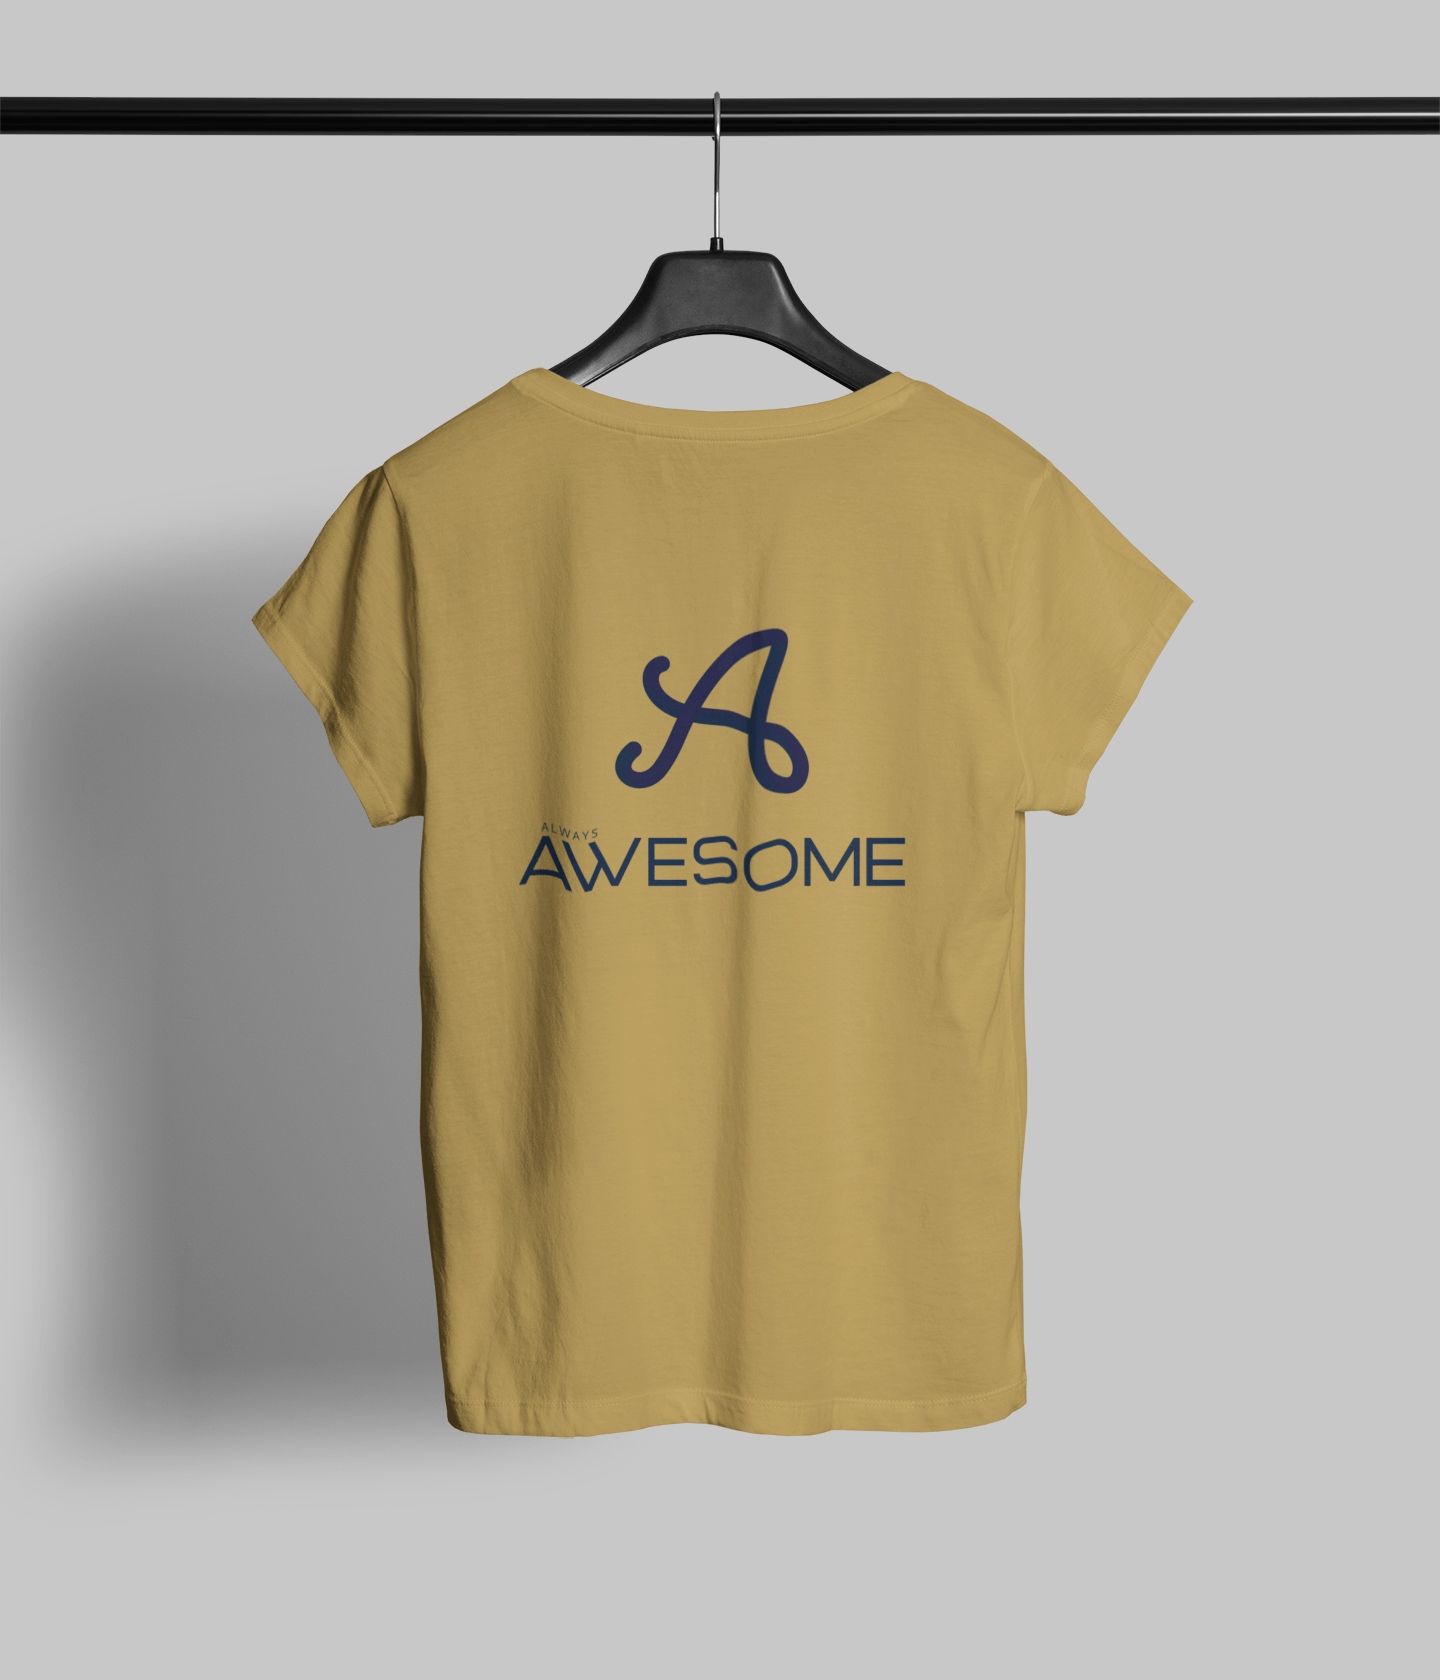 Always Awesome Clothing Printrove Mustard Yellow 1